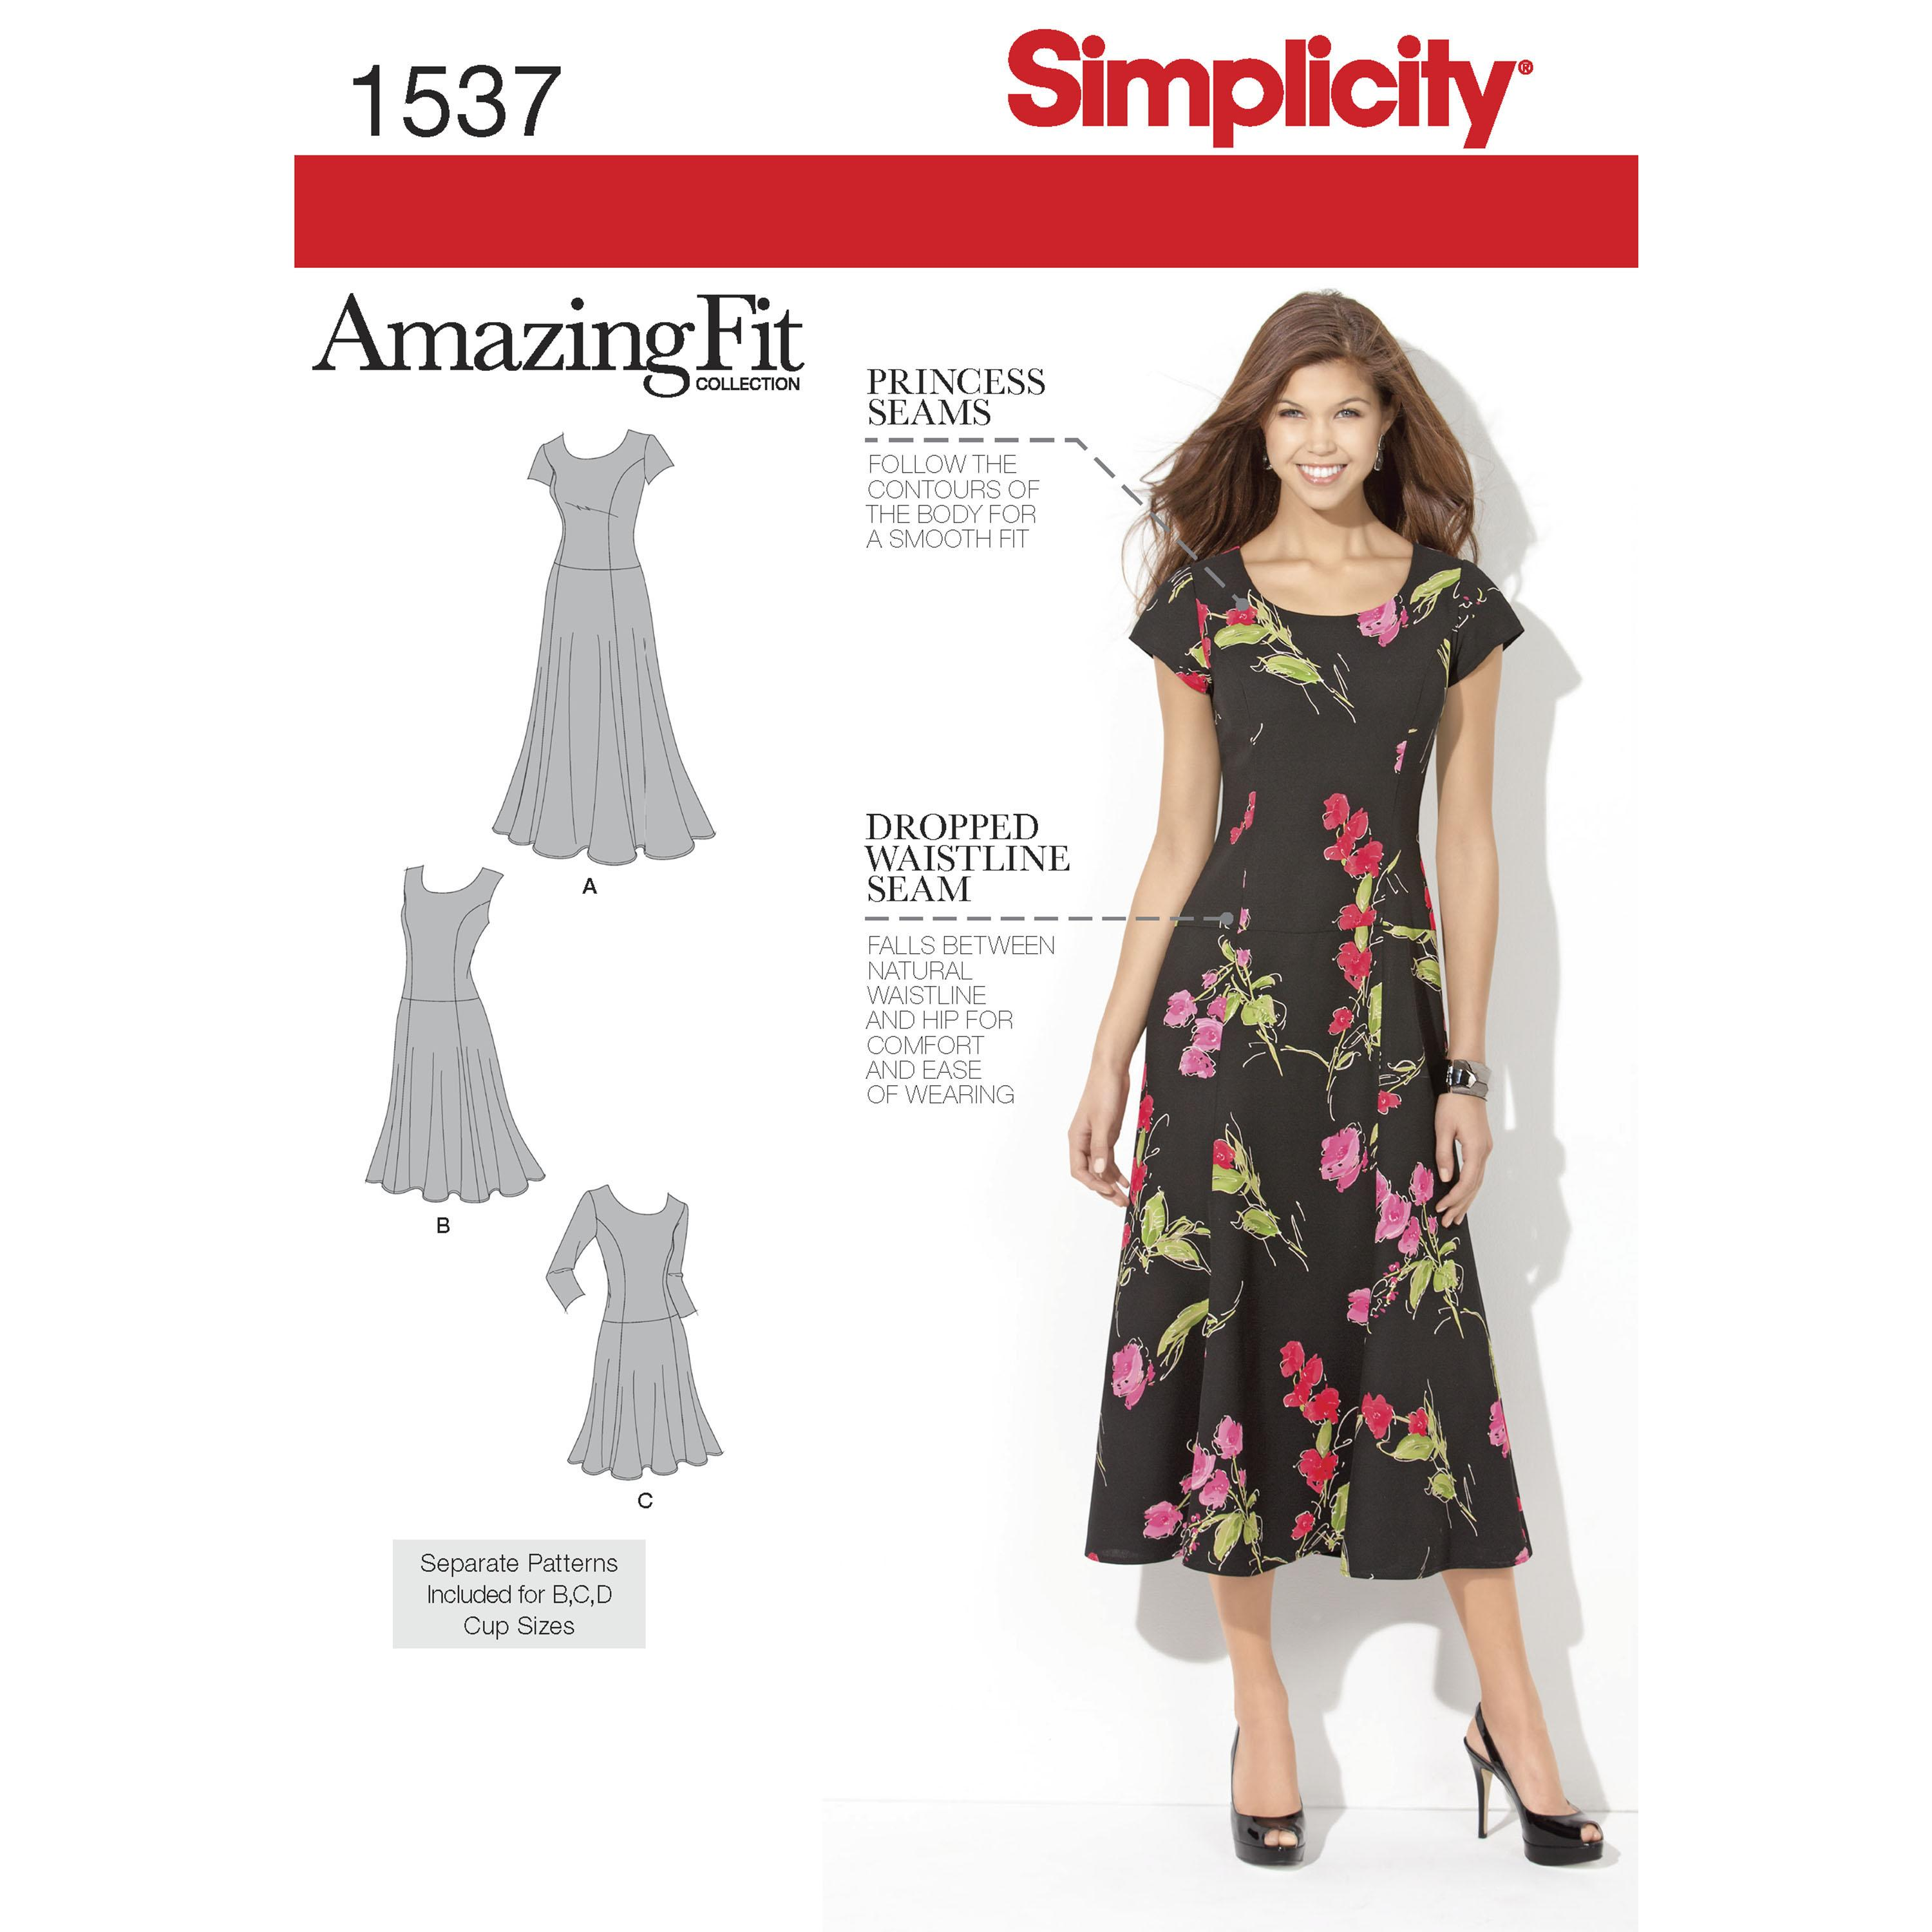 Simplicity S1537 Women's and Plus Size Amazing Fit Dress